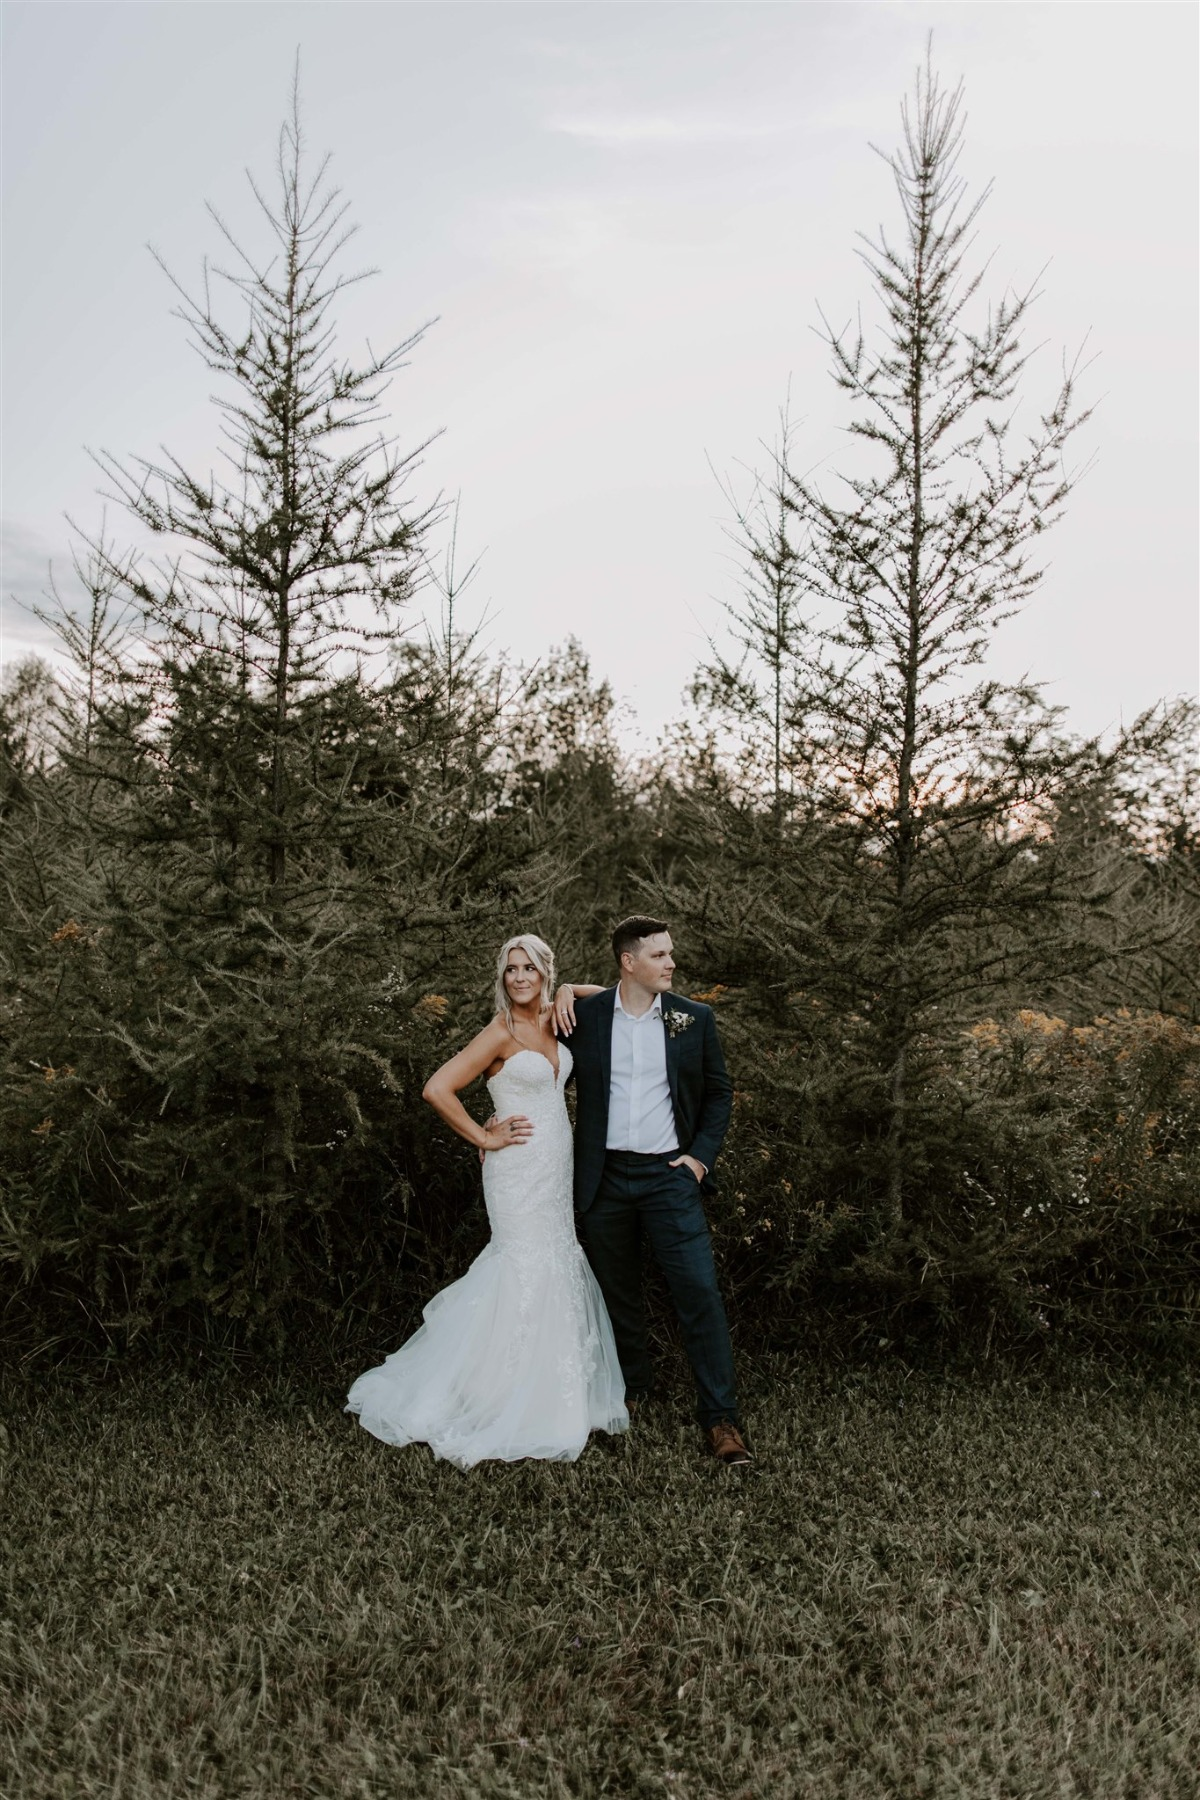 Lindsay and Mitch's Settlers Loft fun-filled wedding